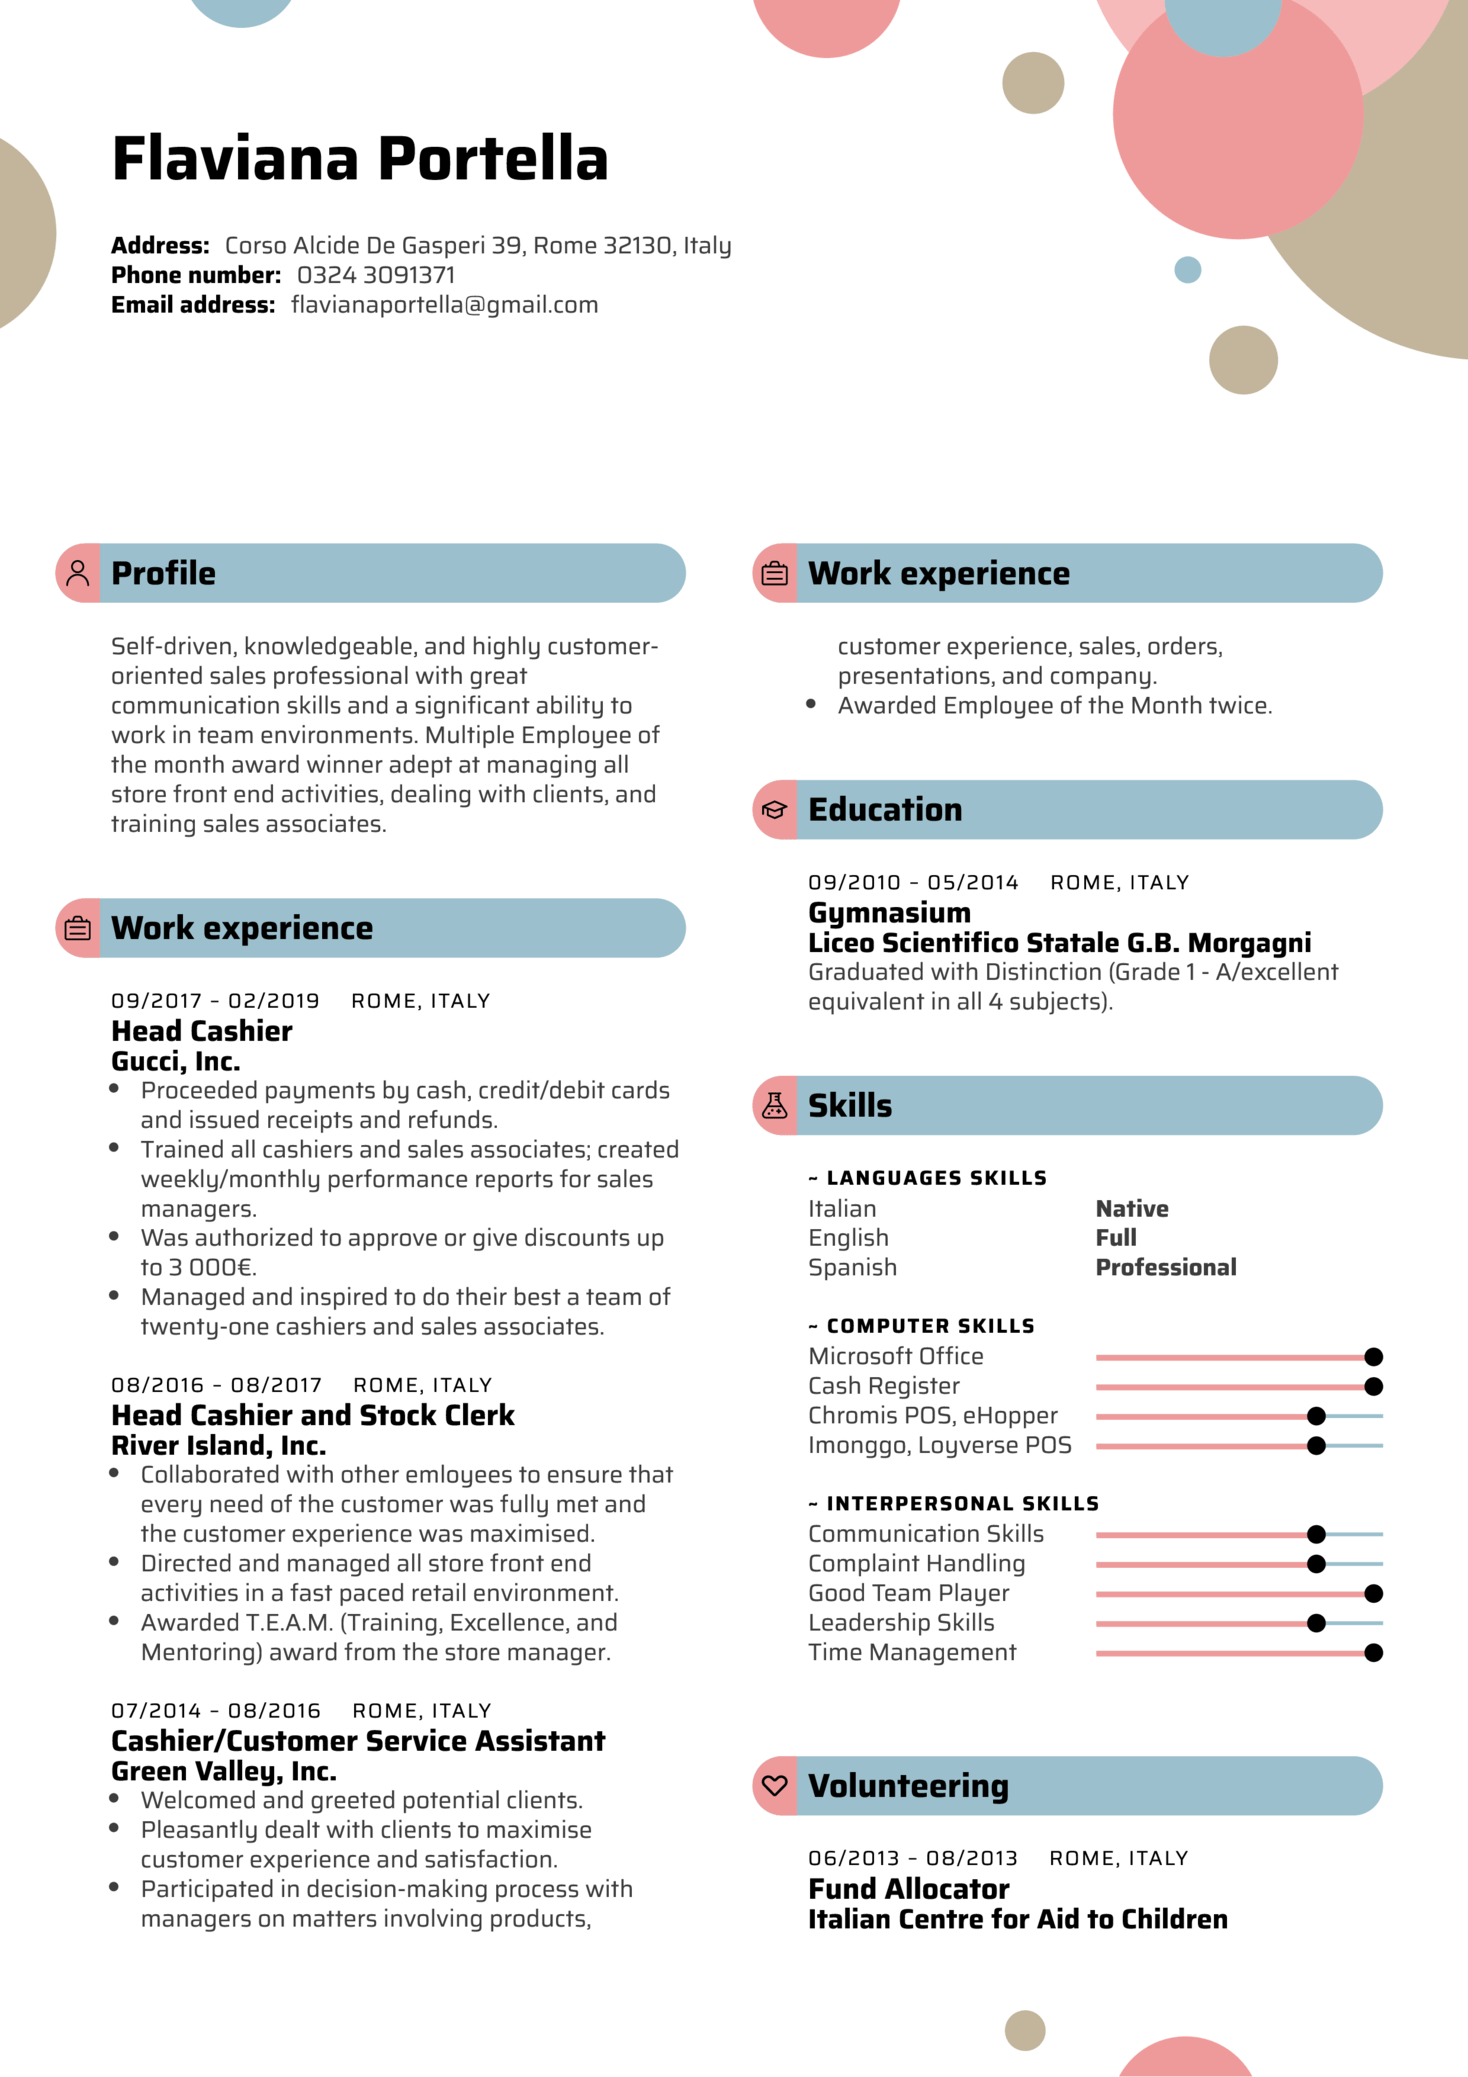 Head Cashier Resume Template (parte 1)